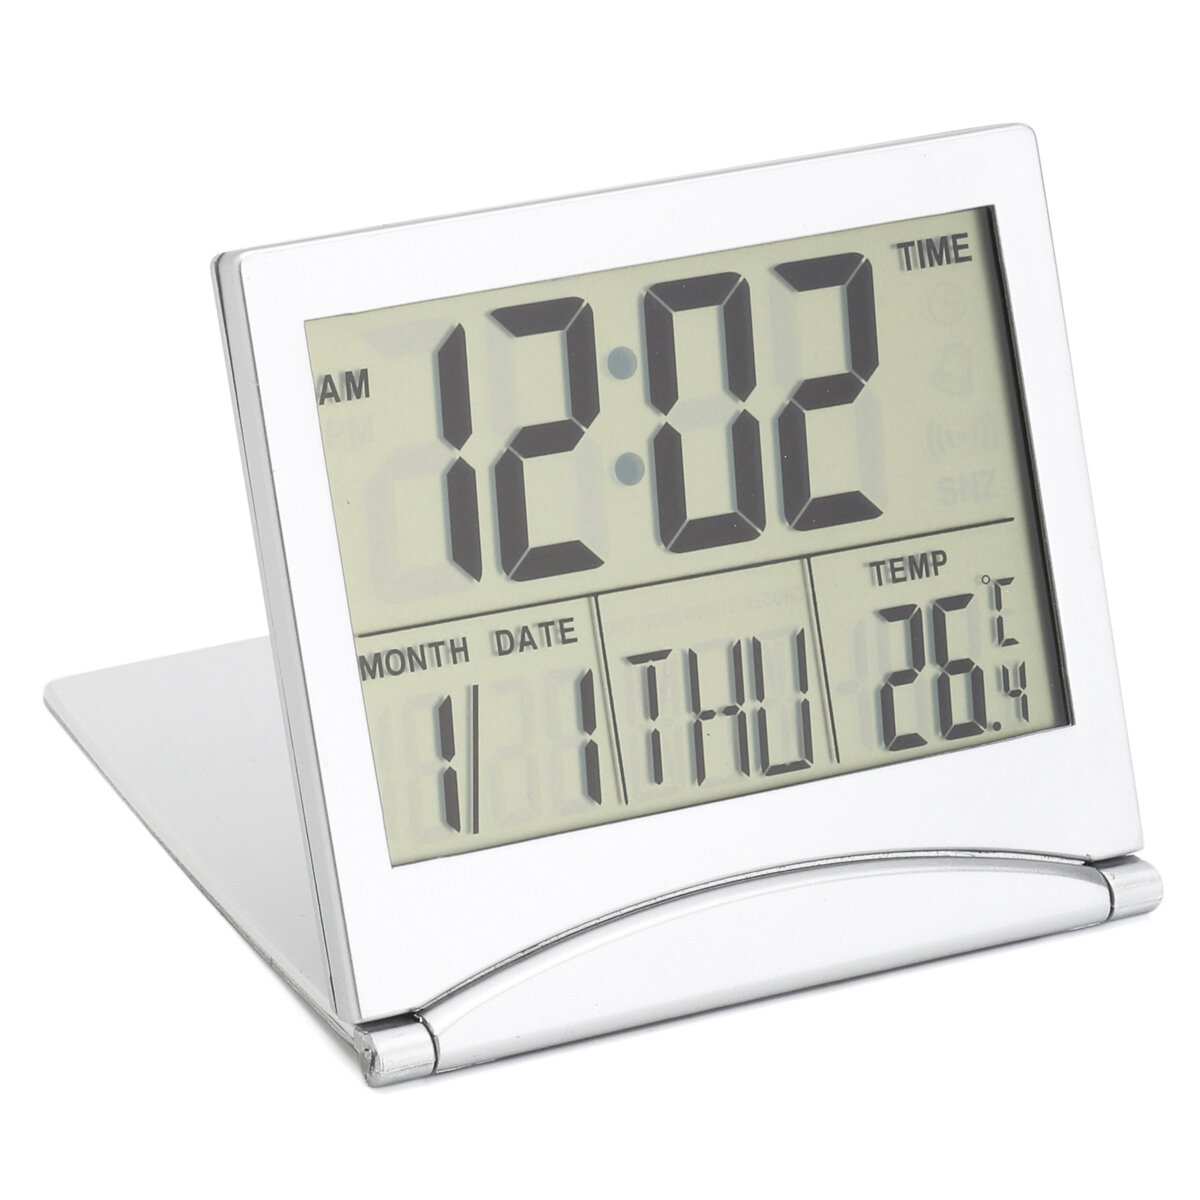 Alarm Timer Digital Lcd Screen Travel Alarm Clocks Table Desk Thermometer Timer Calendar